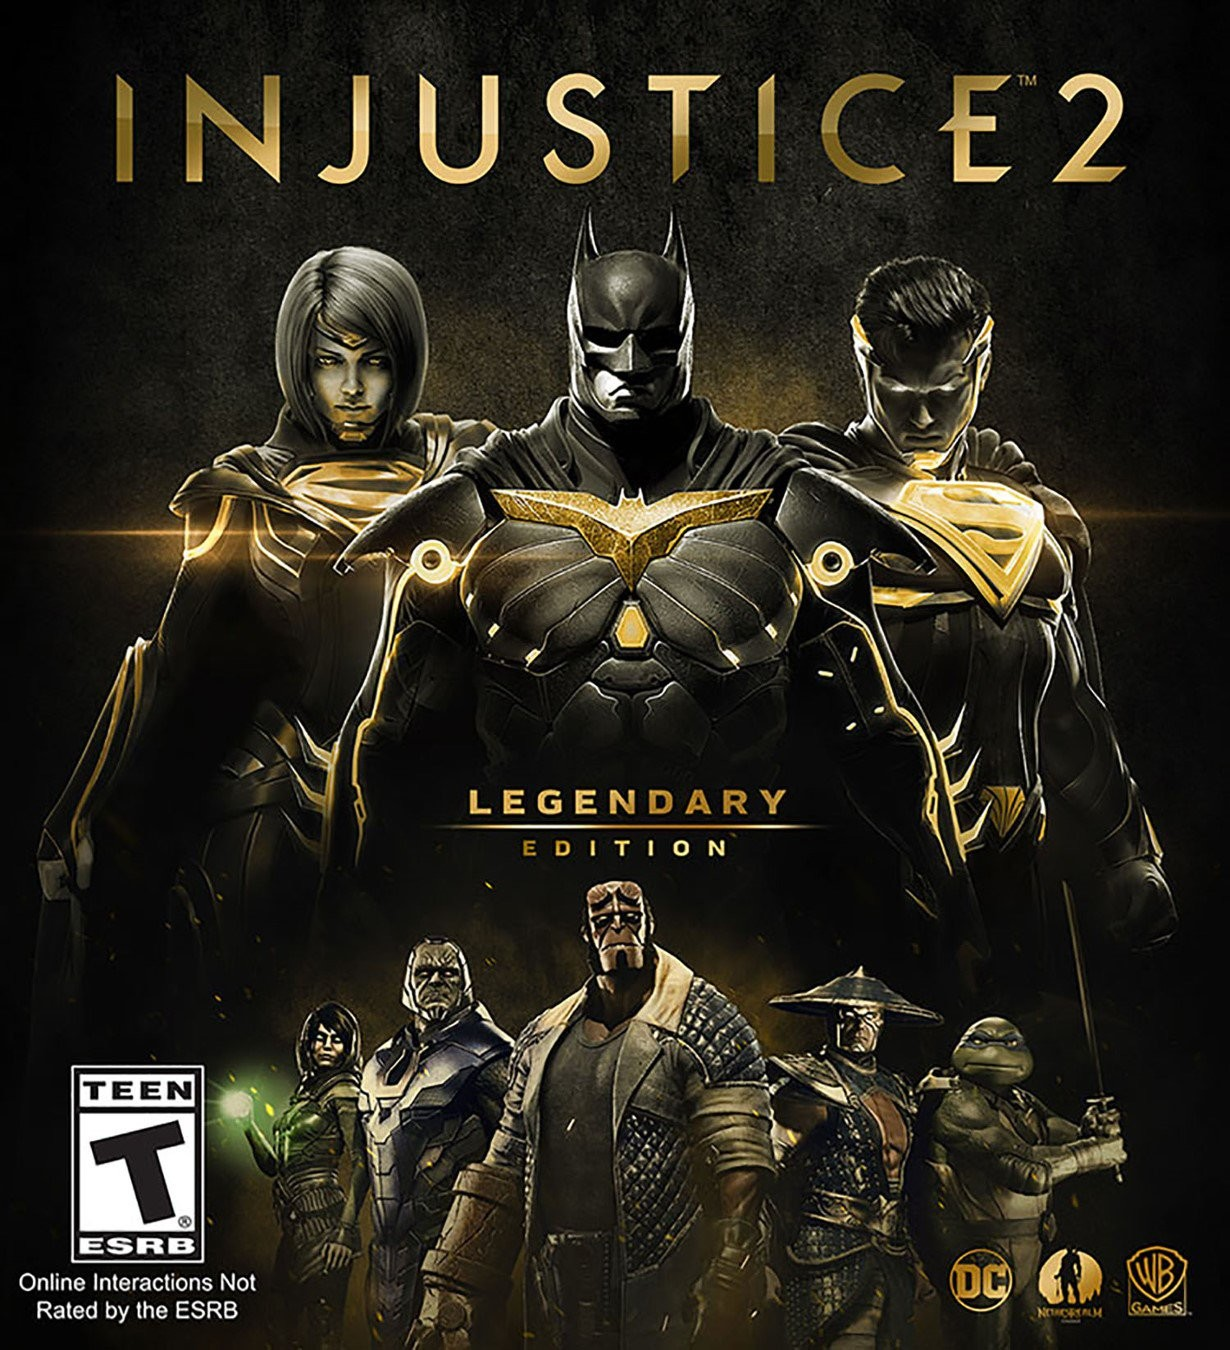 Injustice 2 Legendary Edition officially announced for March 27th